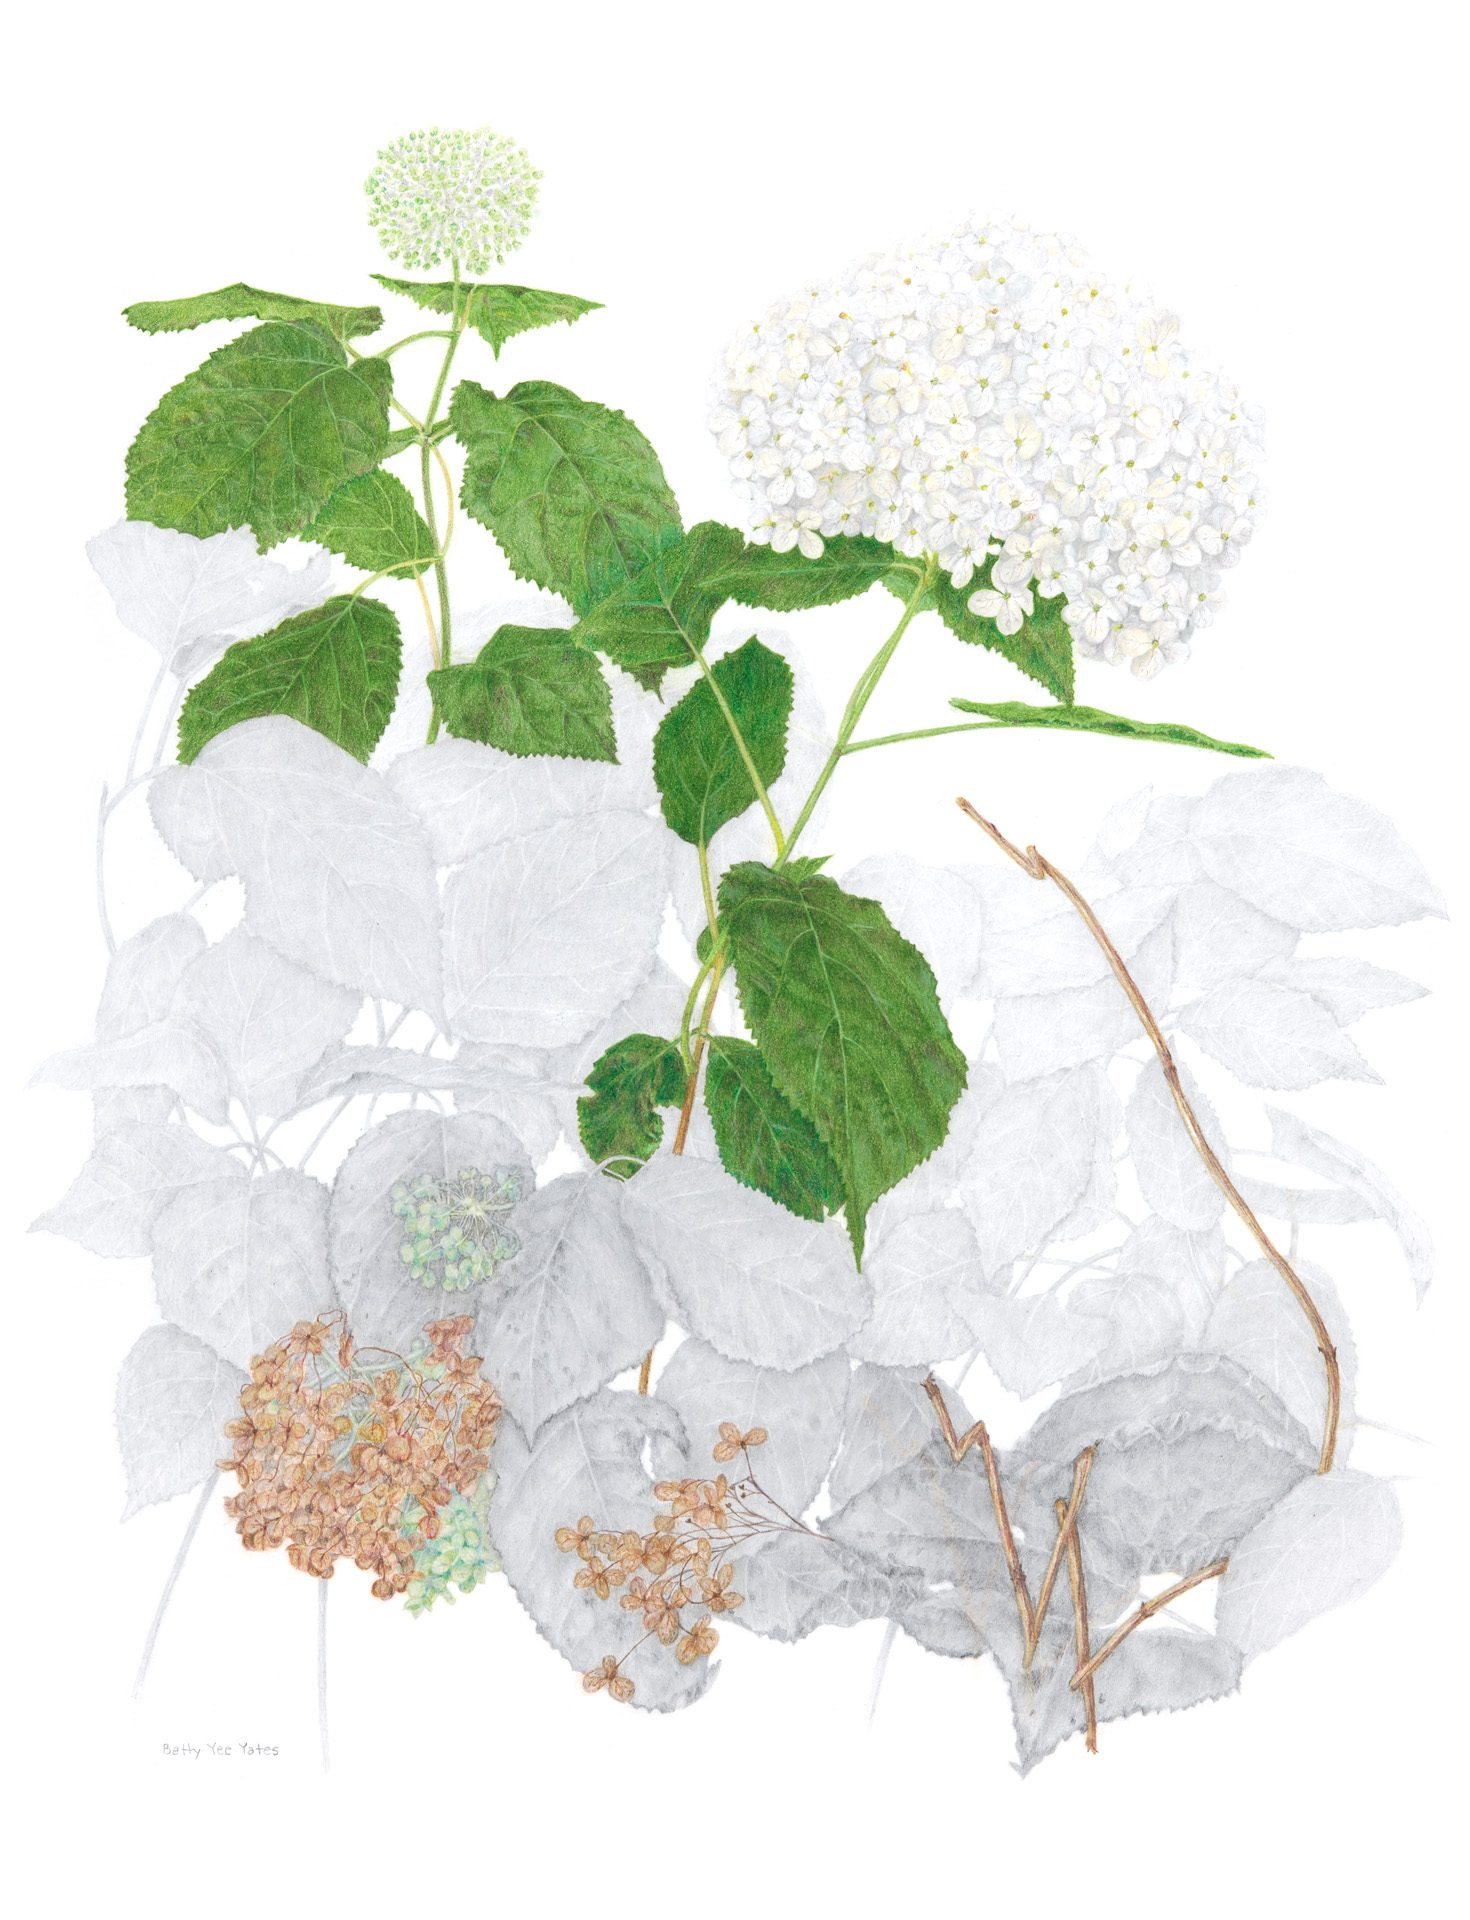 Wild hydrangea, Hydrangea arborescens, Colored pencil, graphite aquarelle and graphitint by Betty Yee Yates